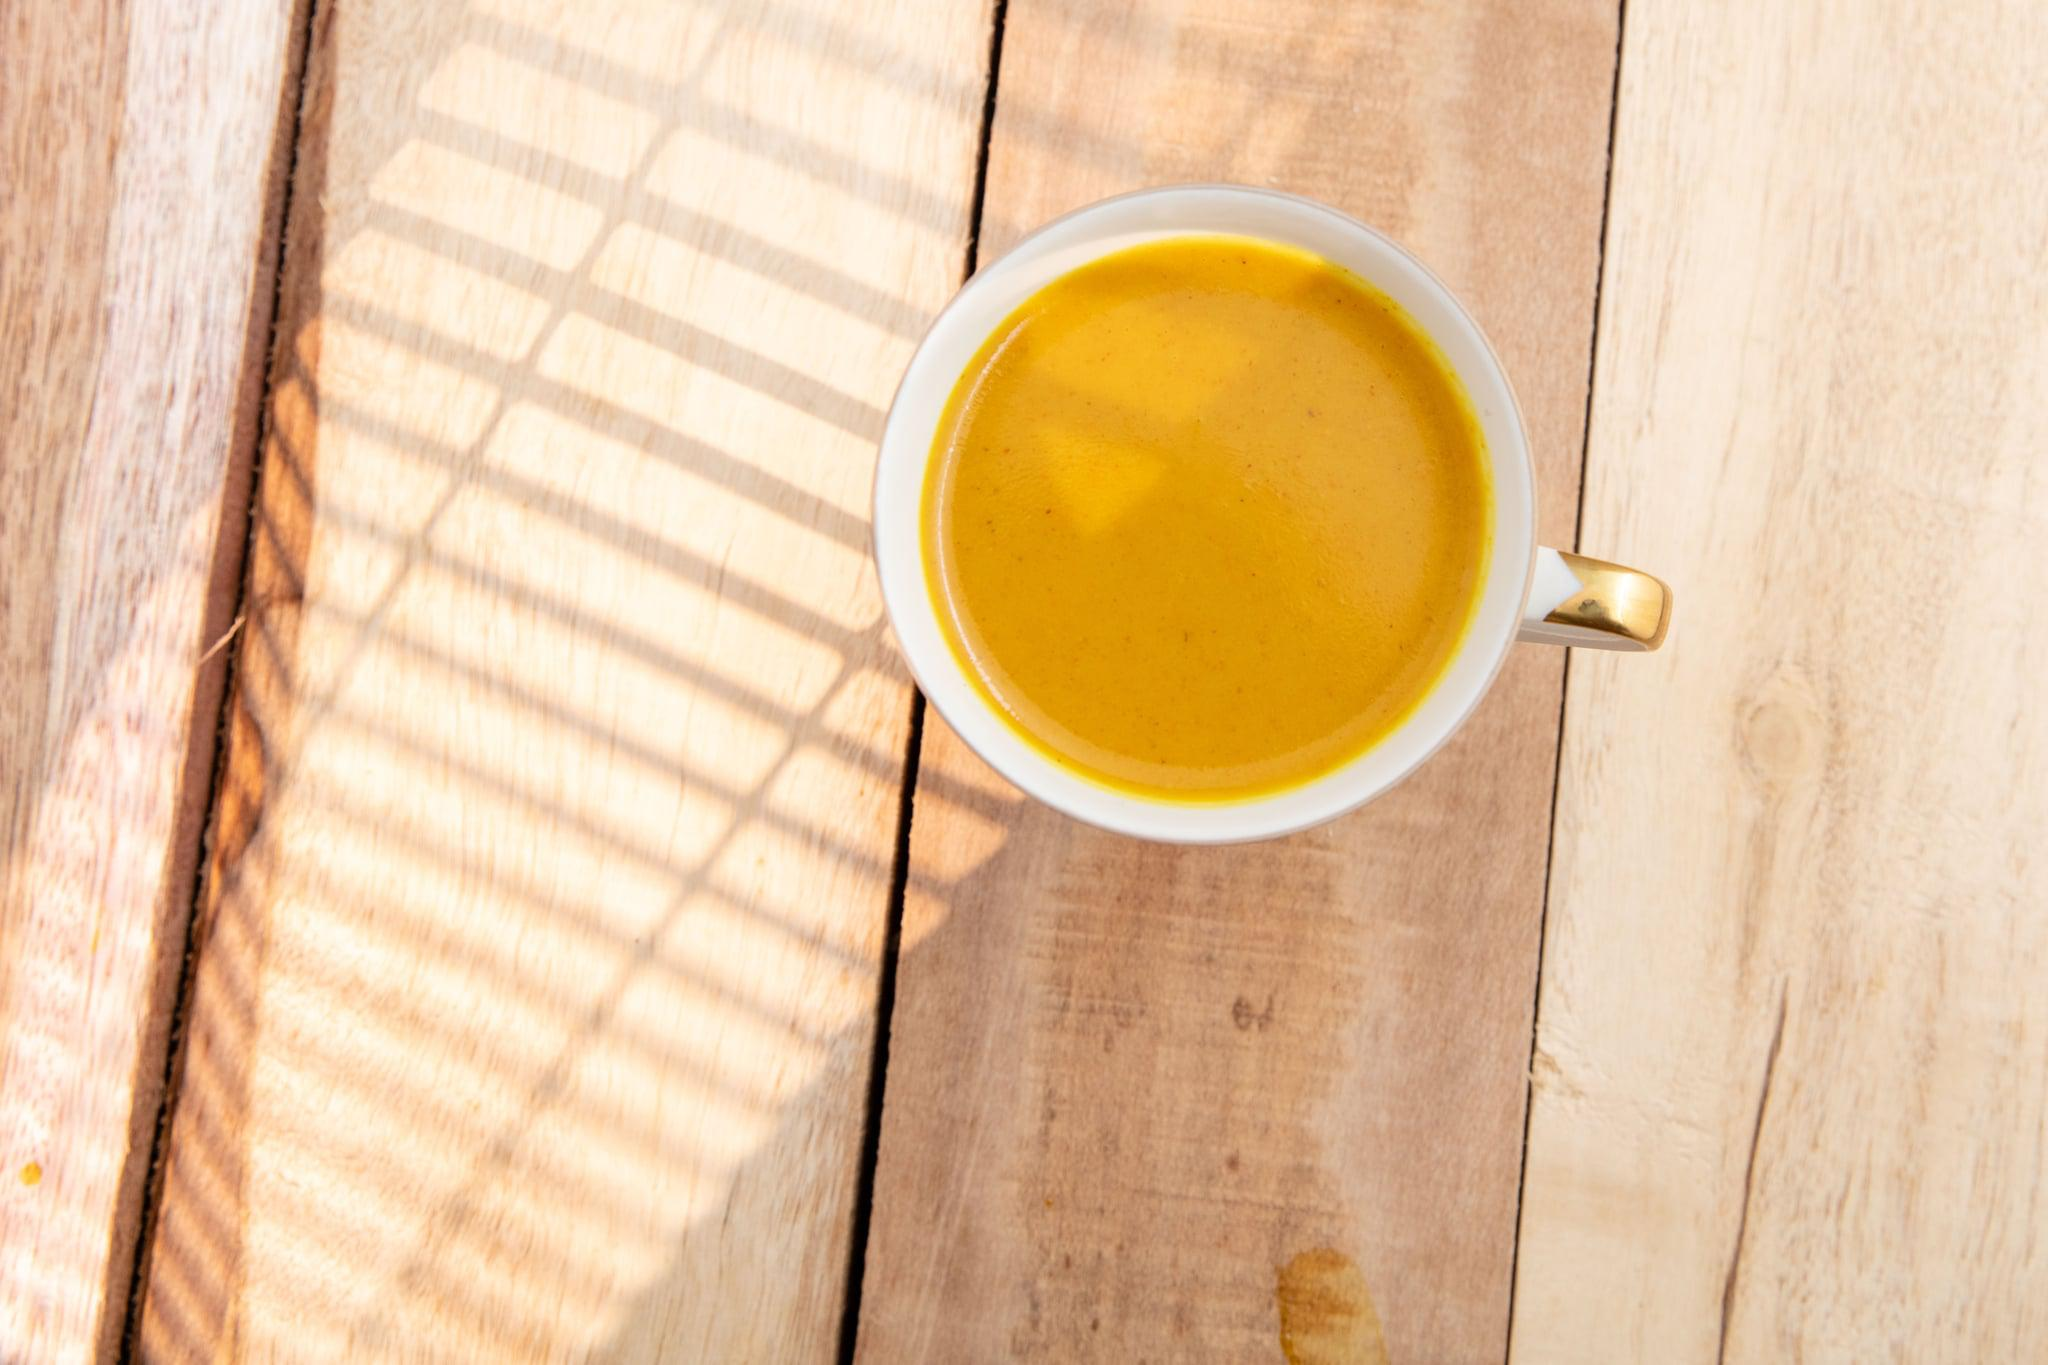 Hot turmeric latte. Served in white cup. Wooden plank. High point of view.